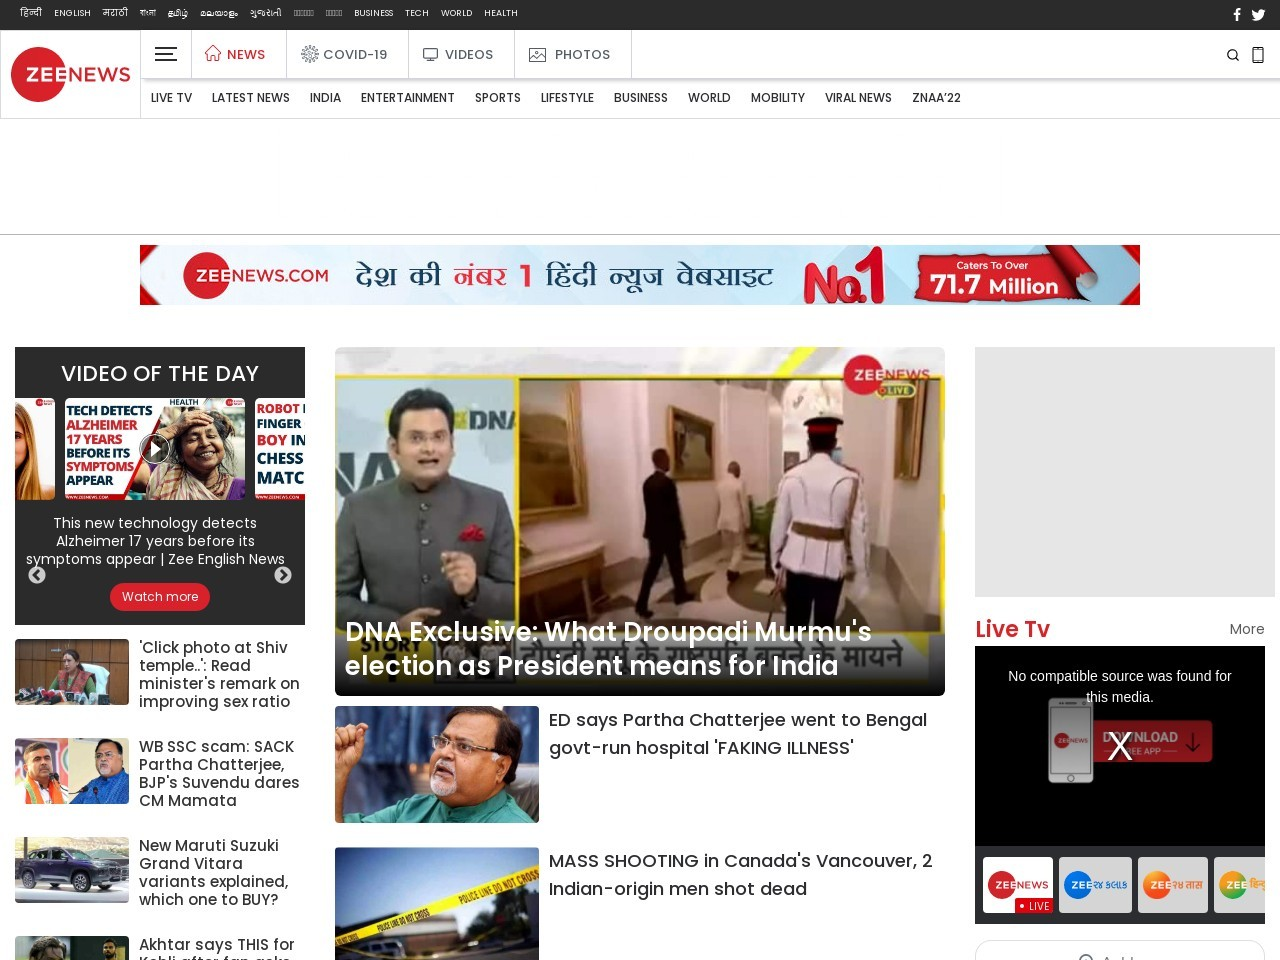 Dismal Review System: Stats that highlight MS Dhoni-less India's struggle with DRS